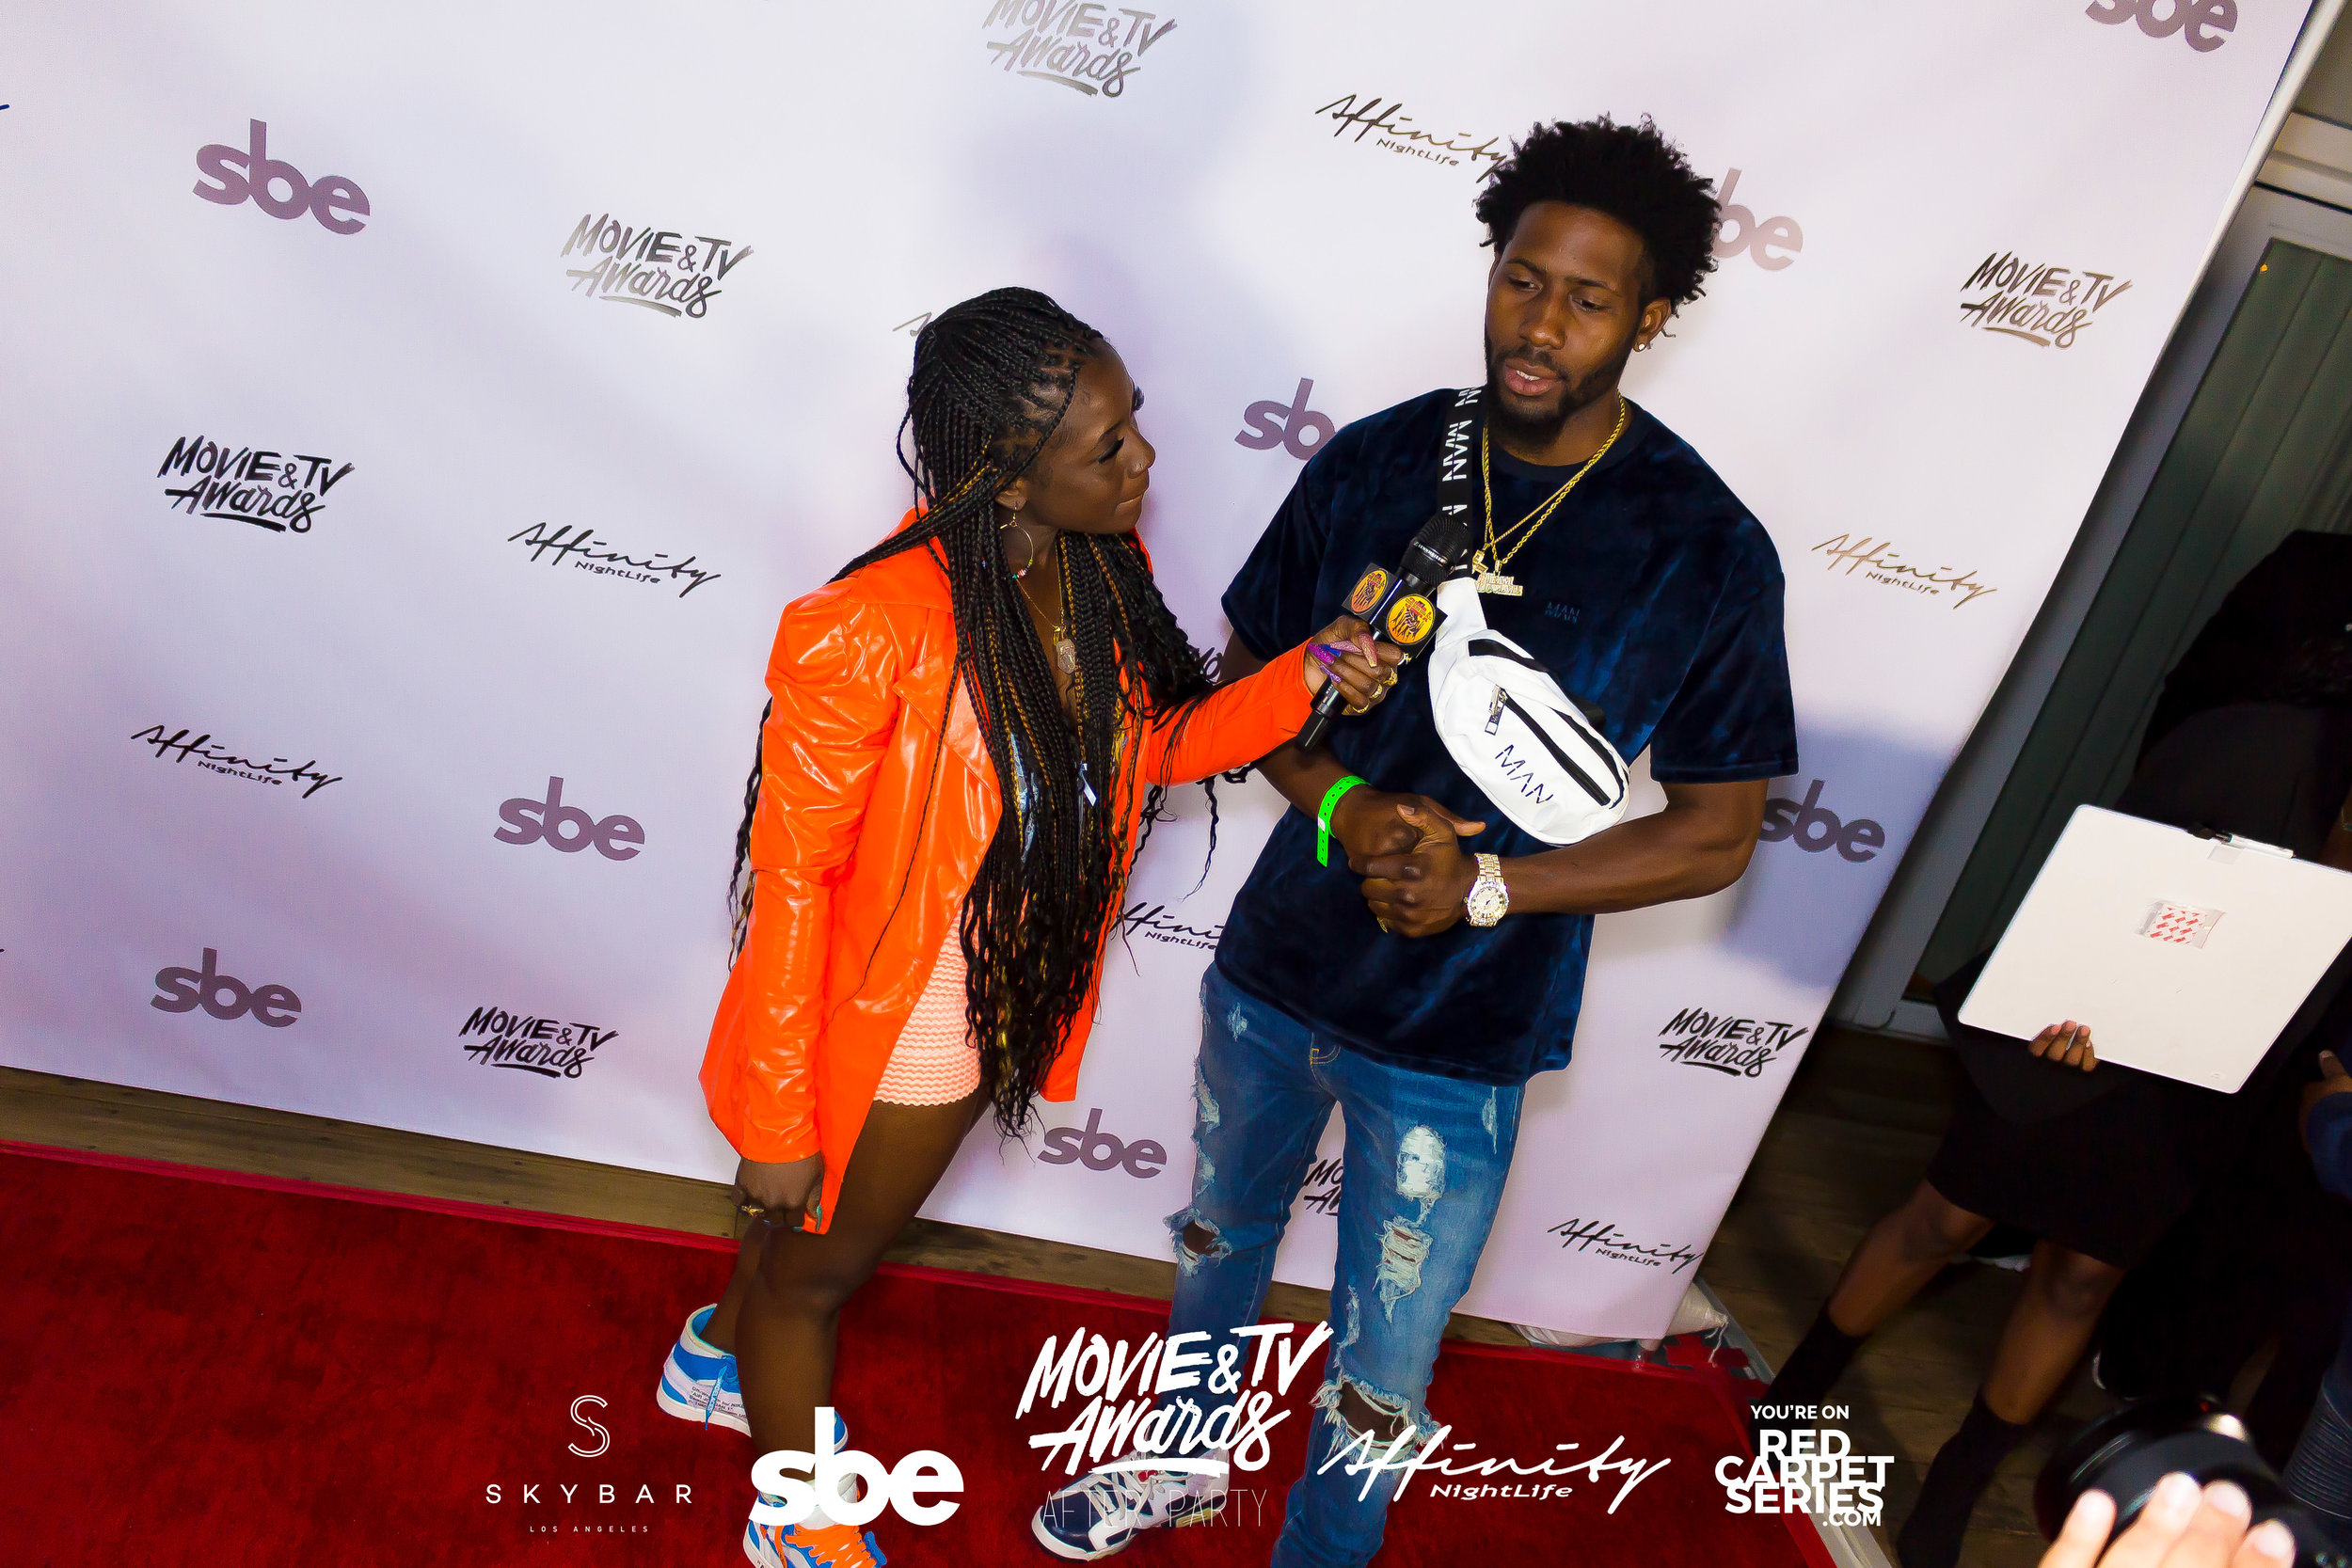 Affinity Nightlife MTV Movie & TV Awards After Party - Skybar at Mondrian - 06-15-19 - Vol. 1_34.jpg